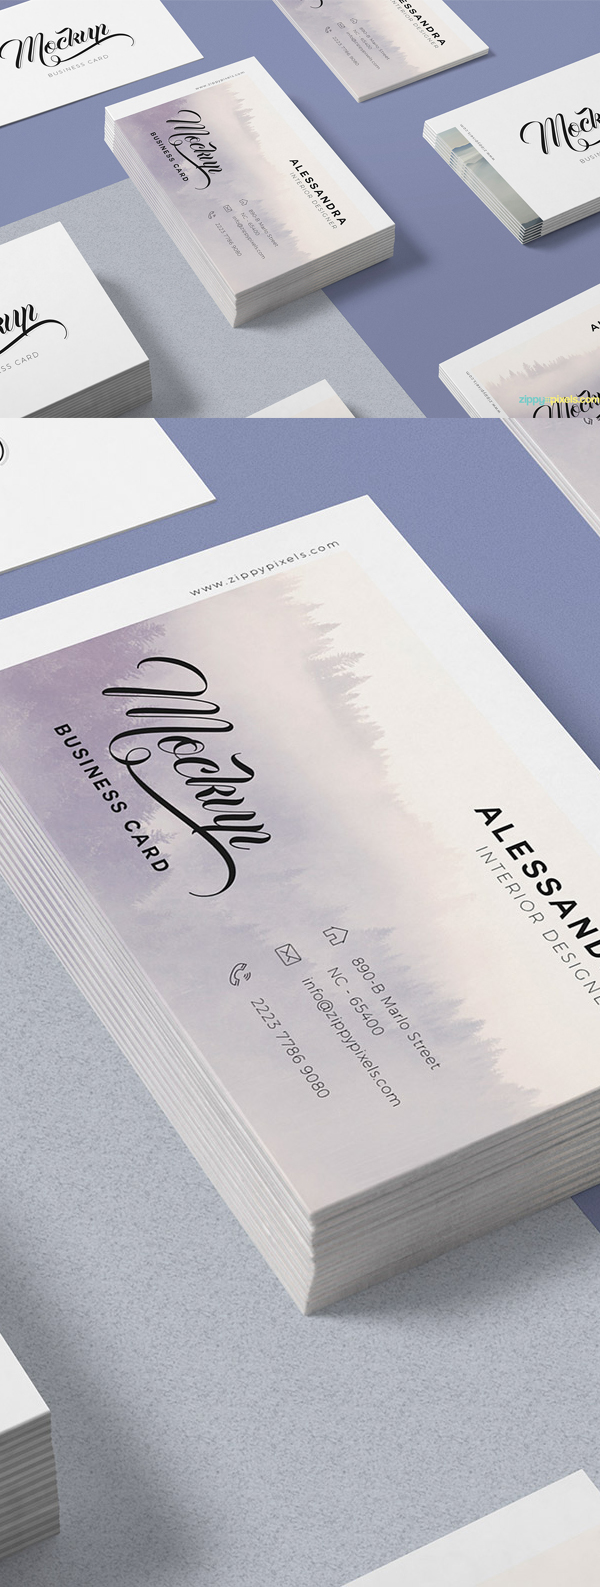 Free isometric business card mock up